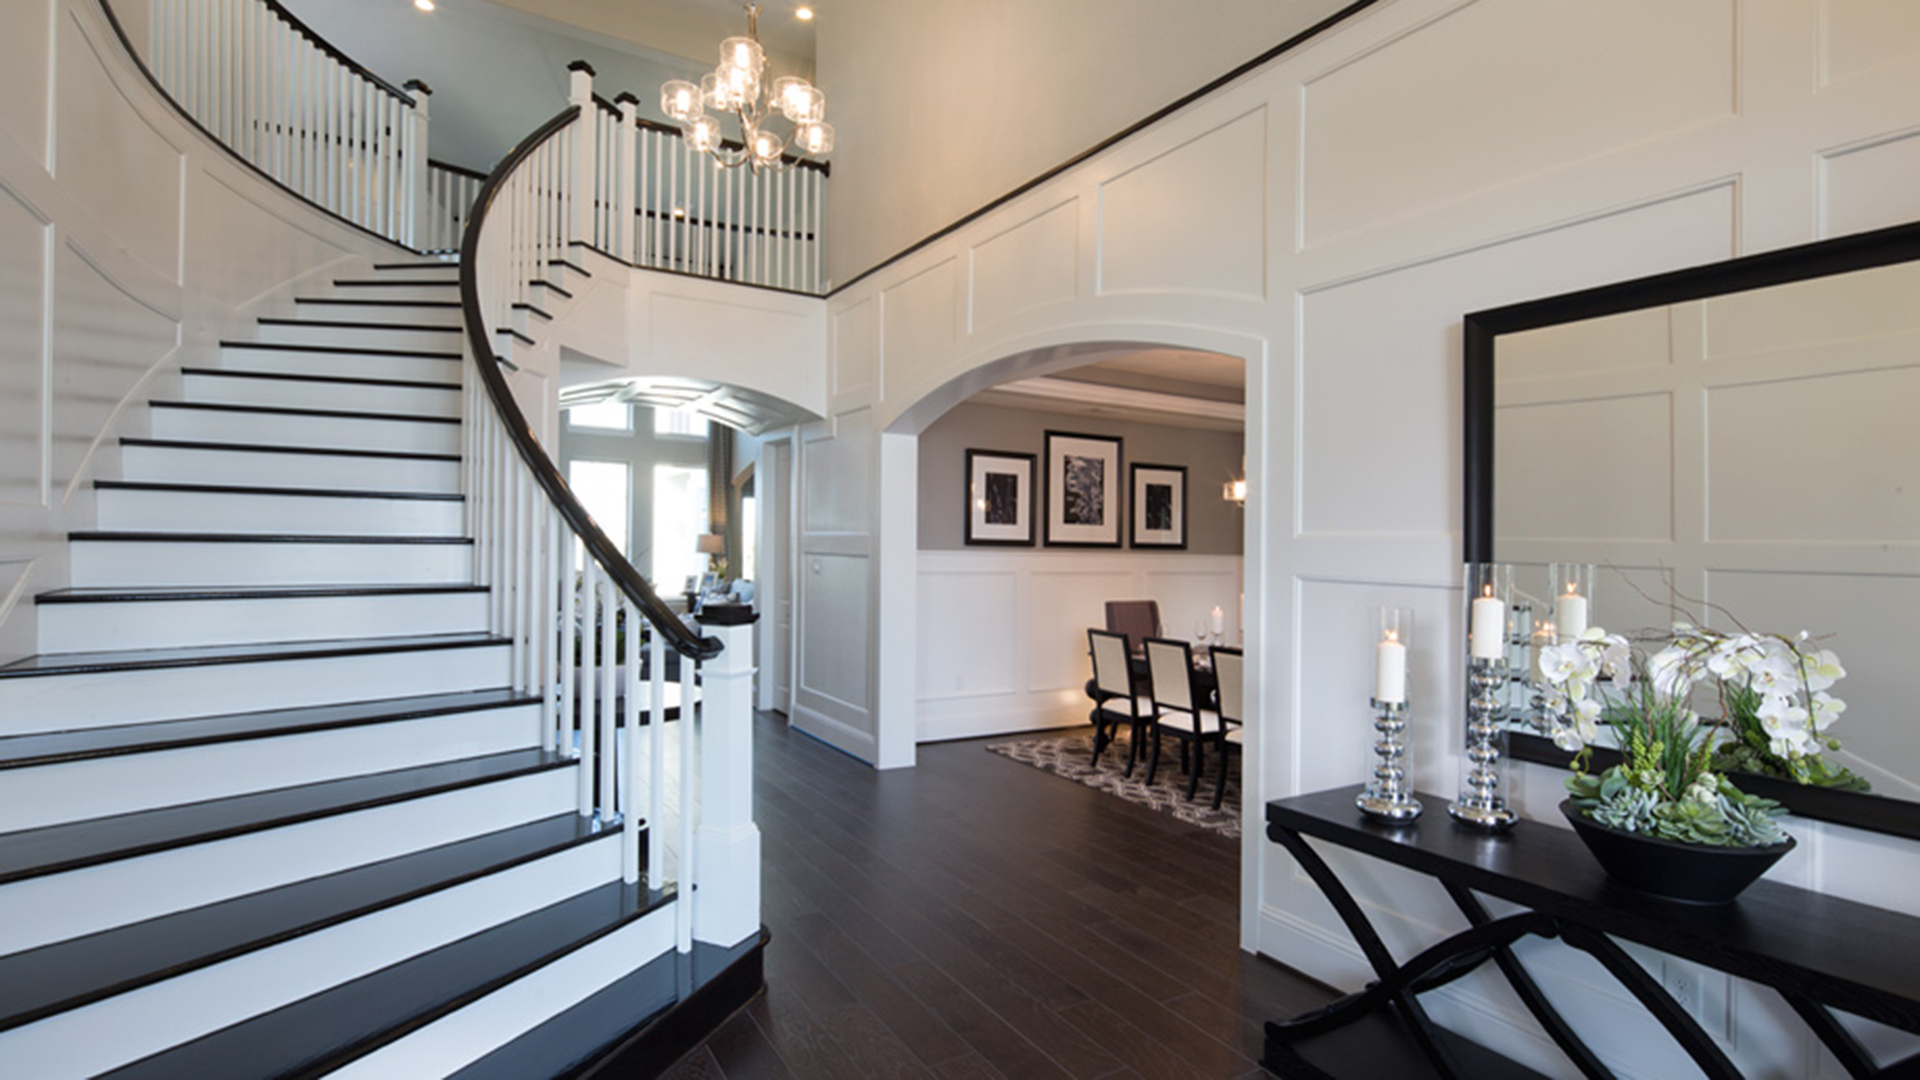 Vallagio Entry - The Woodlands - Creekside Park - The Estates at Blairs Way